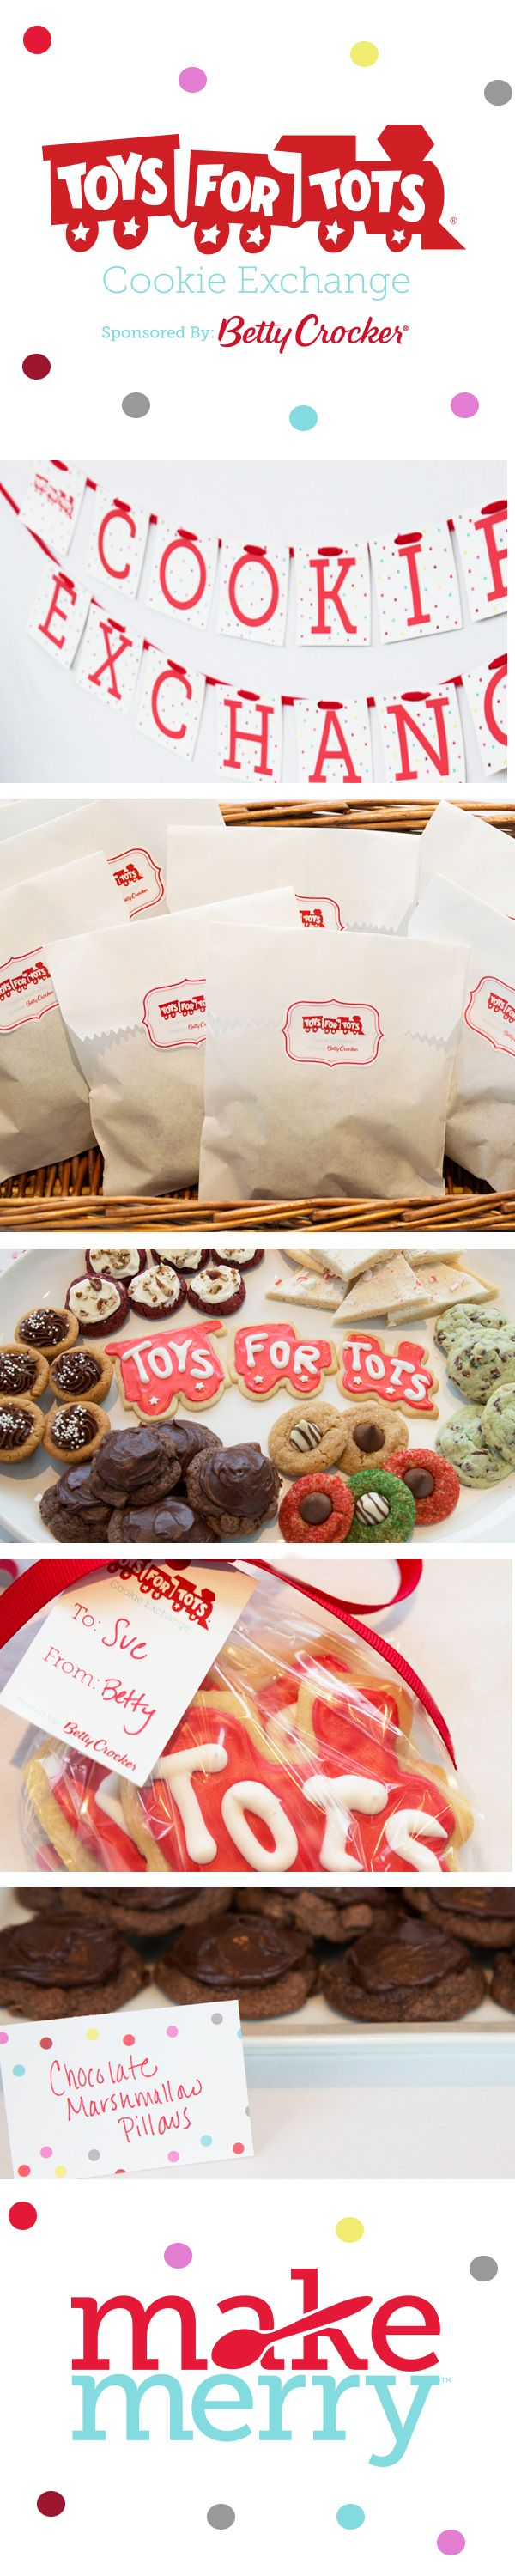 Toys For Tots Sign Up : Images about toys for tots on pinterest bobs